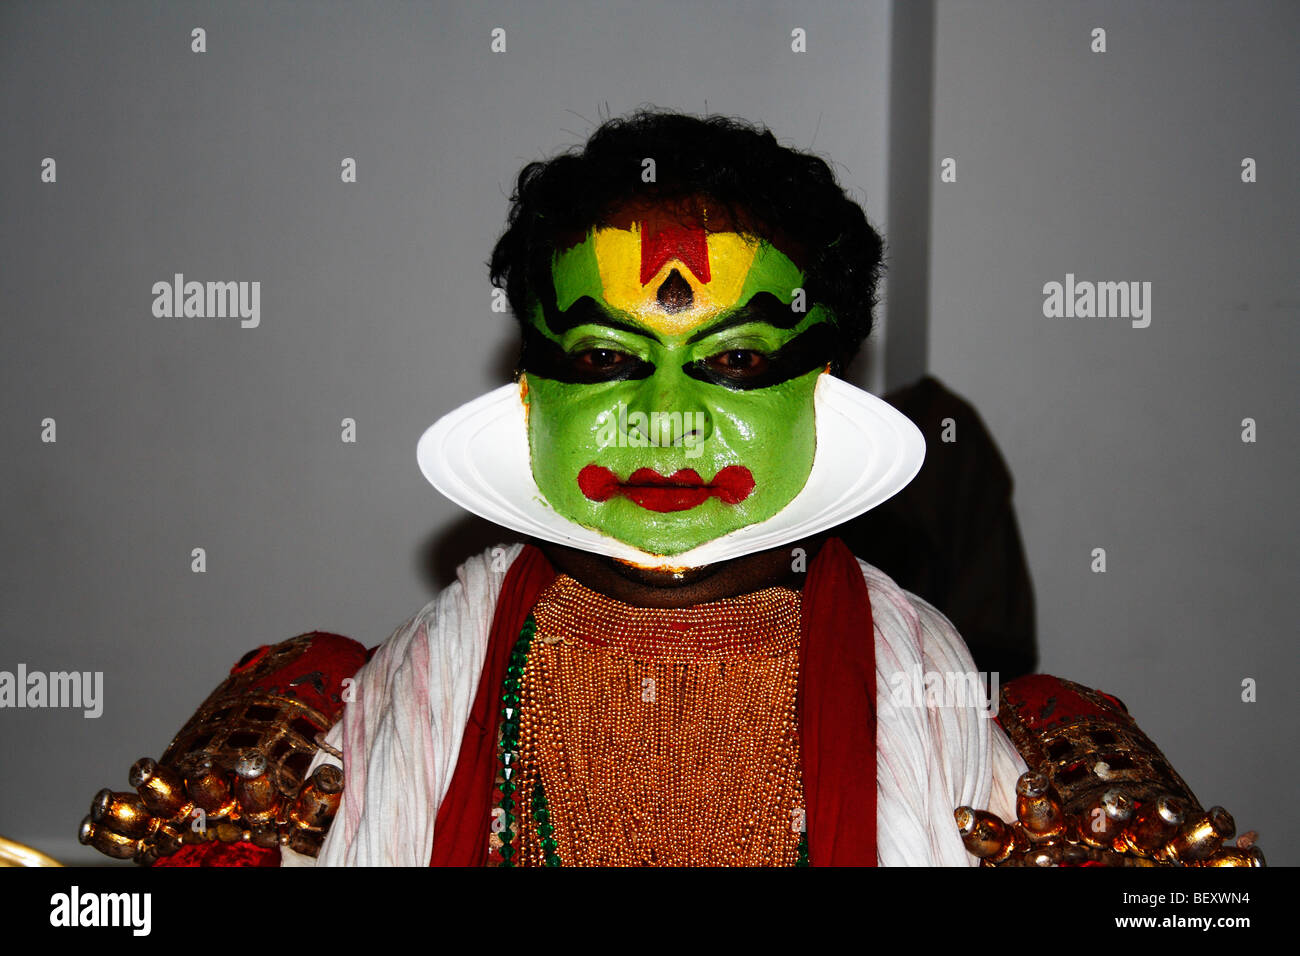 kathakali,face painted, indian drama,classical,cutout,portrait,s a highly stylised classical Indian dance-drama - Stock Image